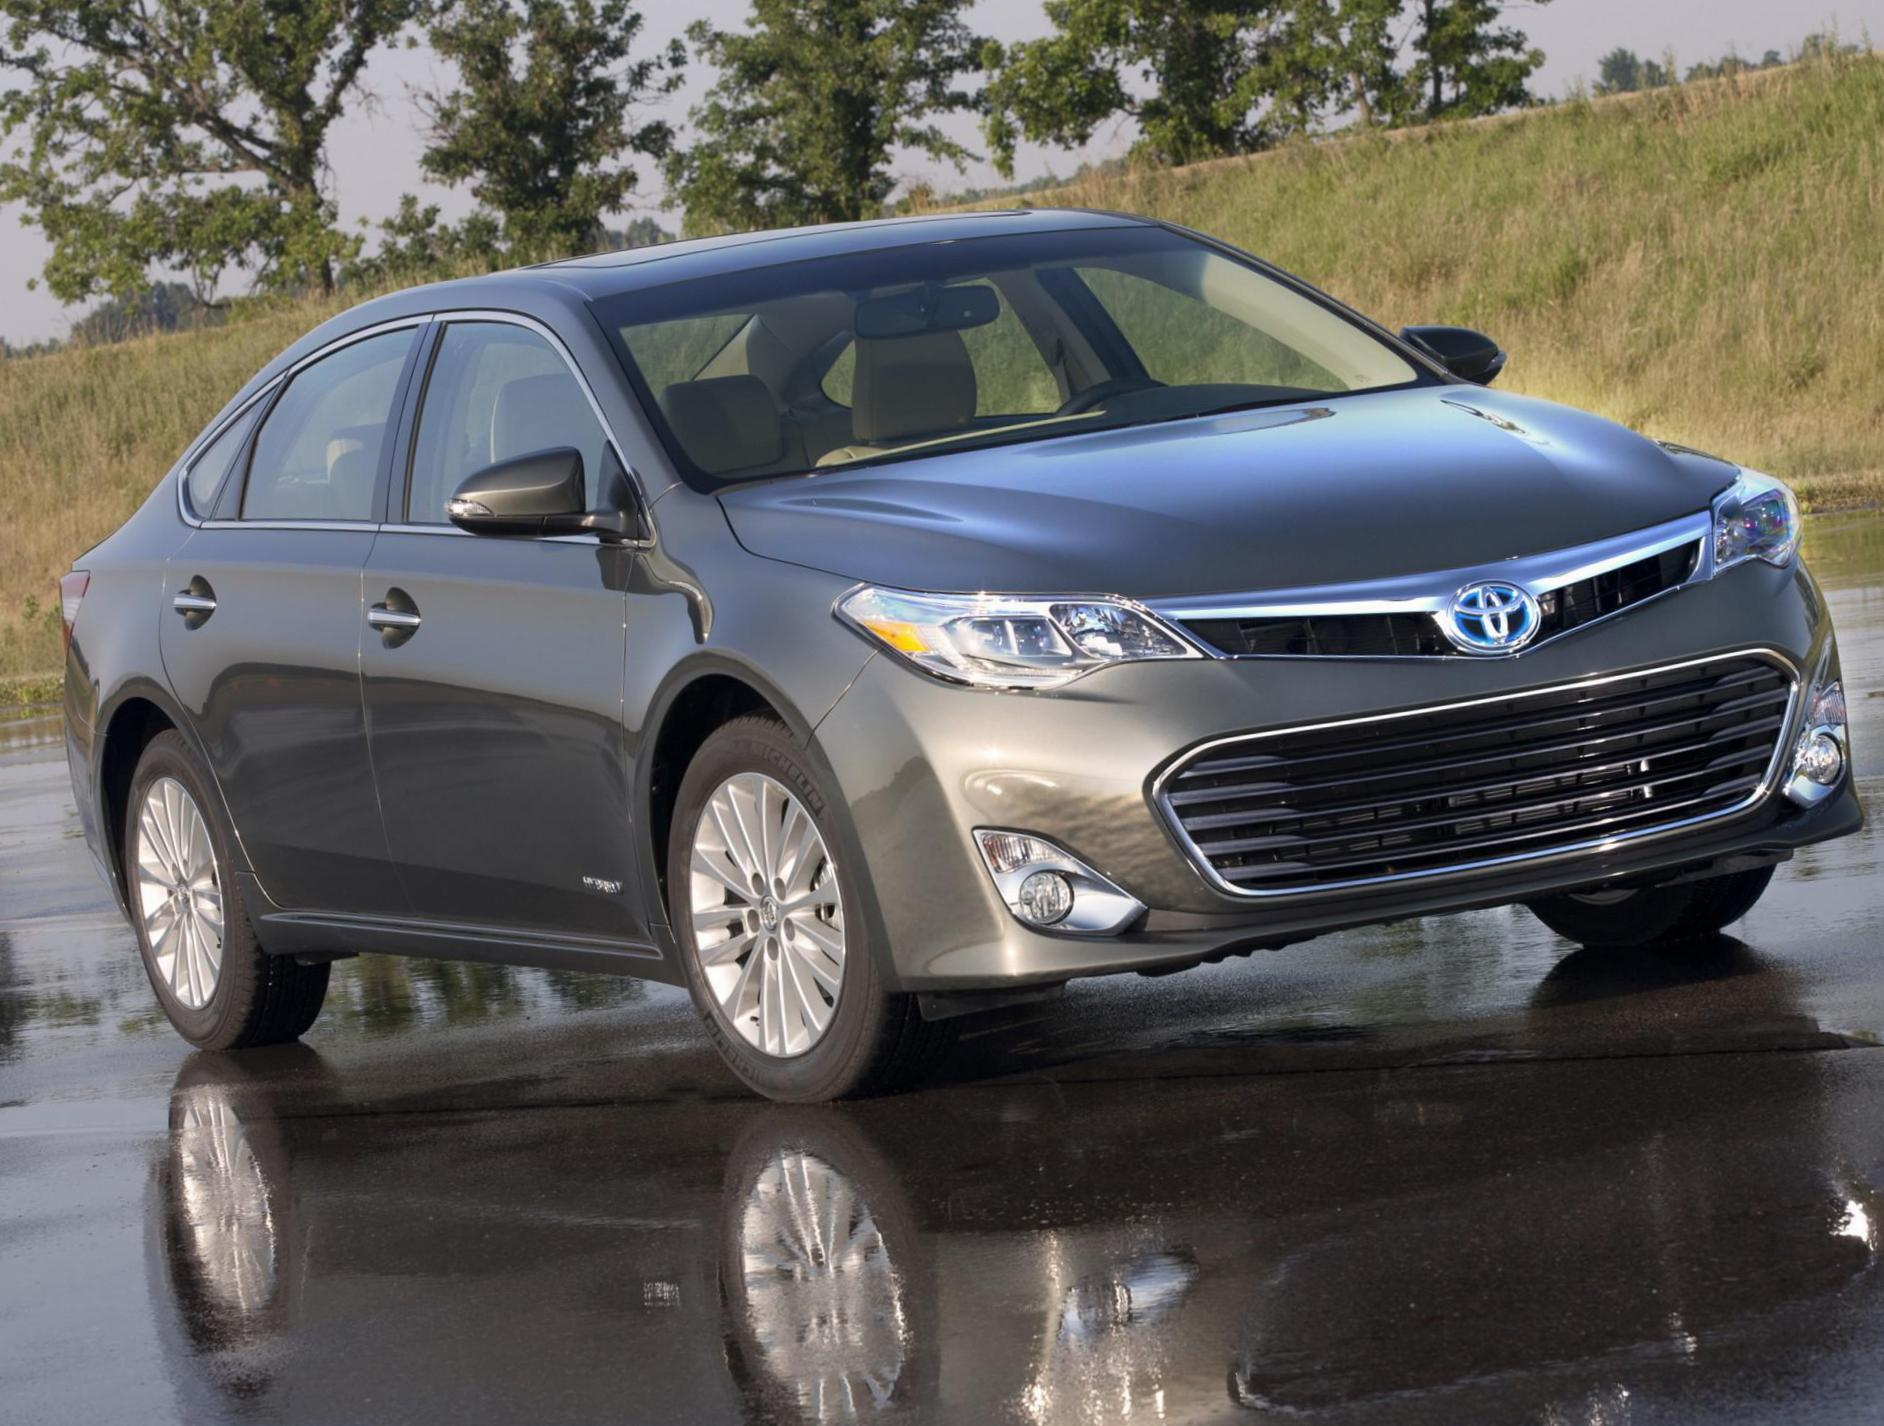 Toyota Avalon Hybrid Specifications coupe